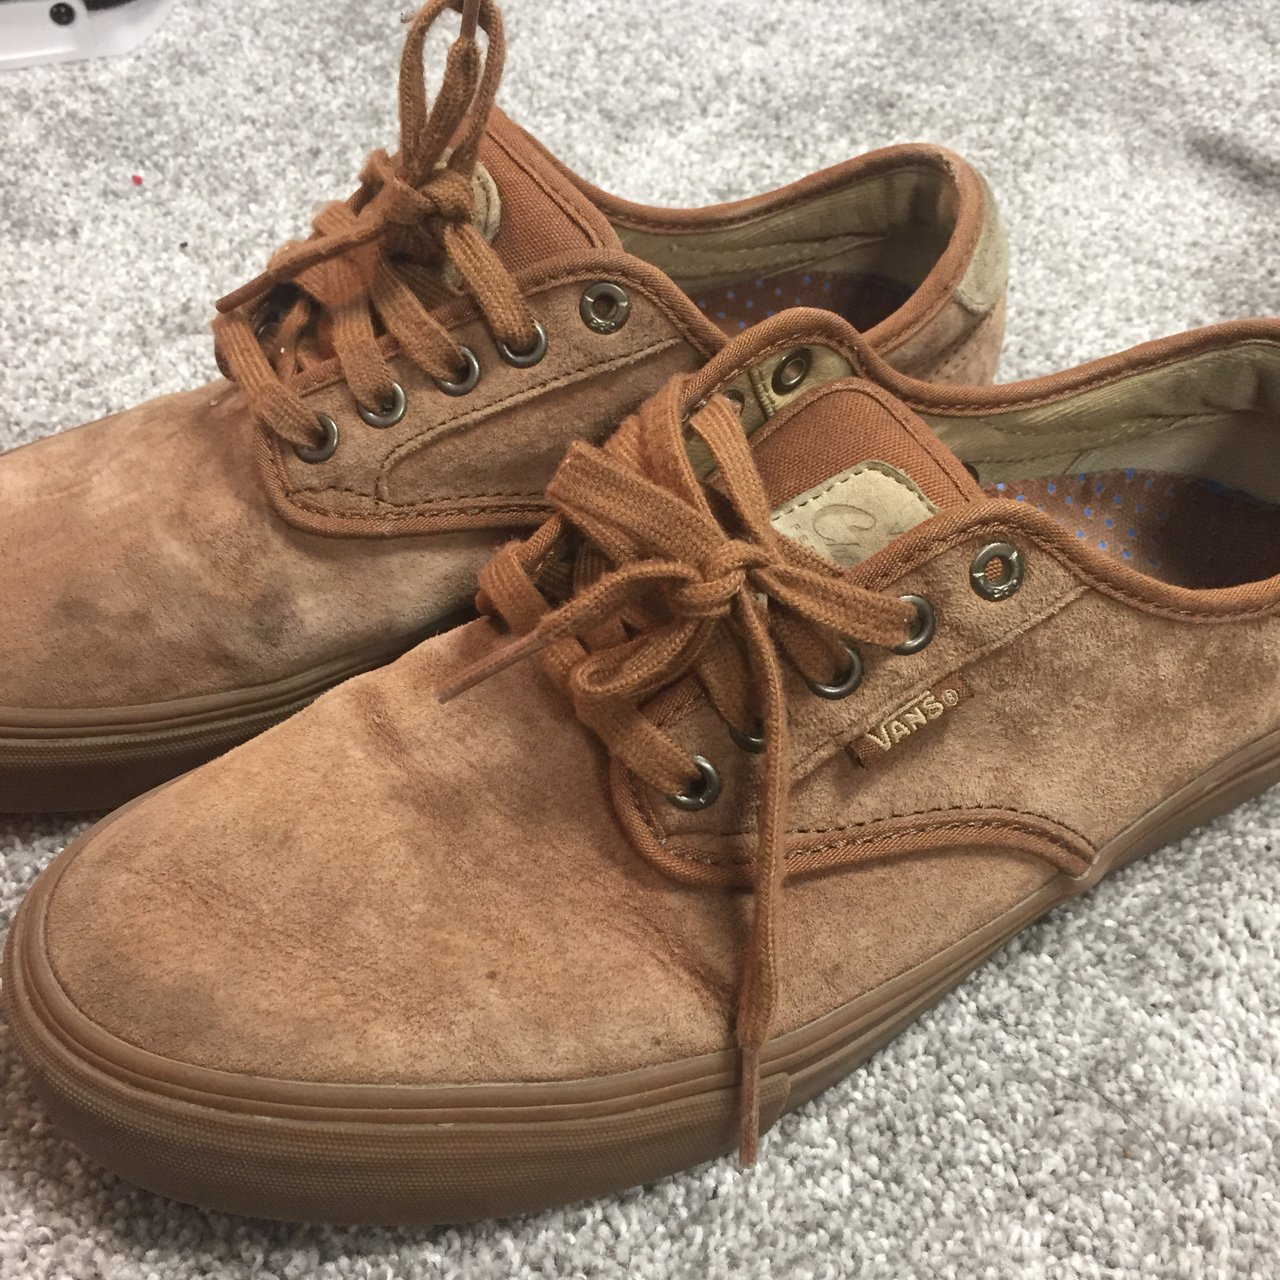 5e5fd5ef8107 Brown suede Vans in good condition. Size 8 UK - Depop